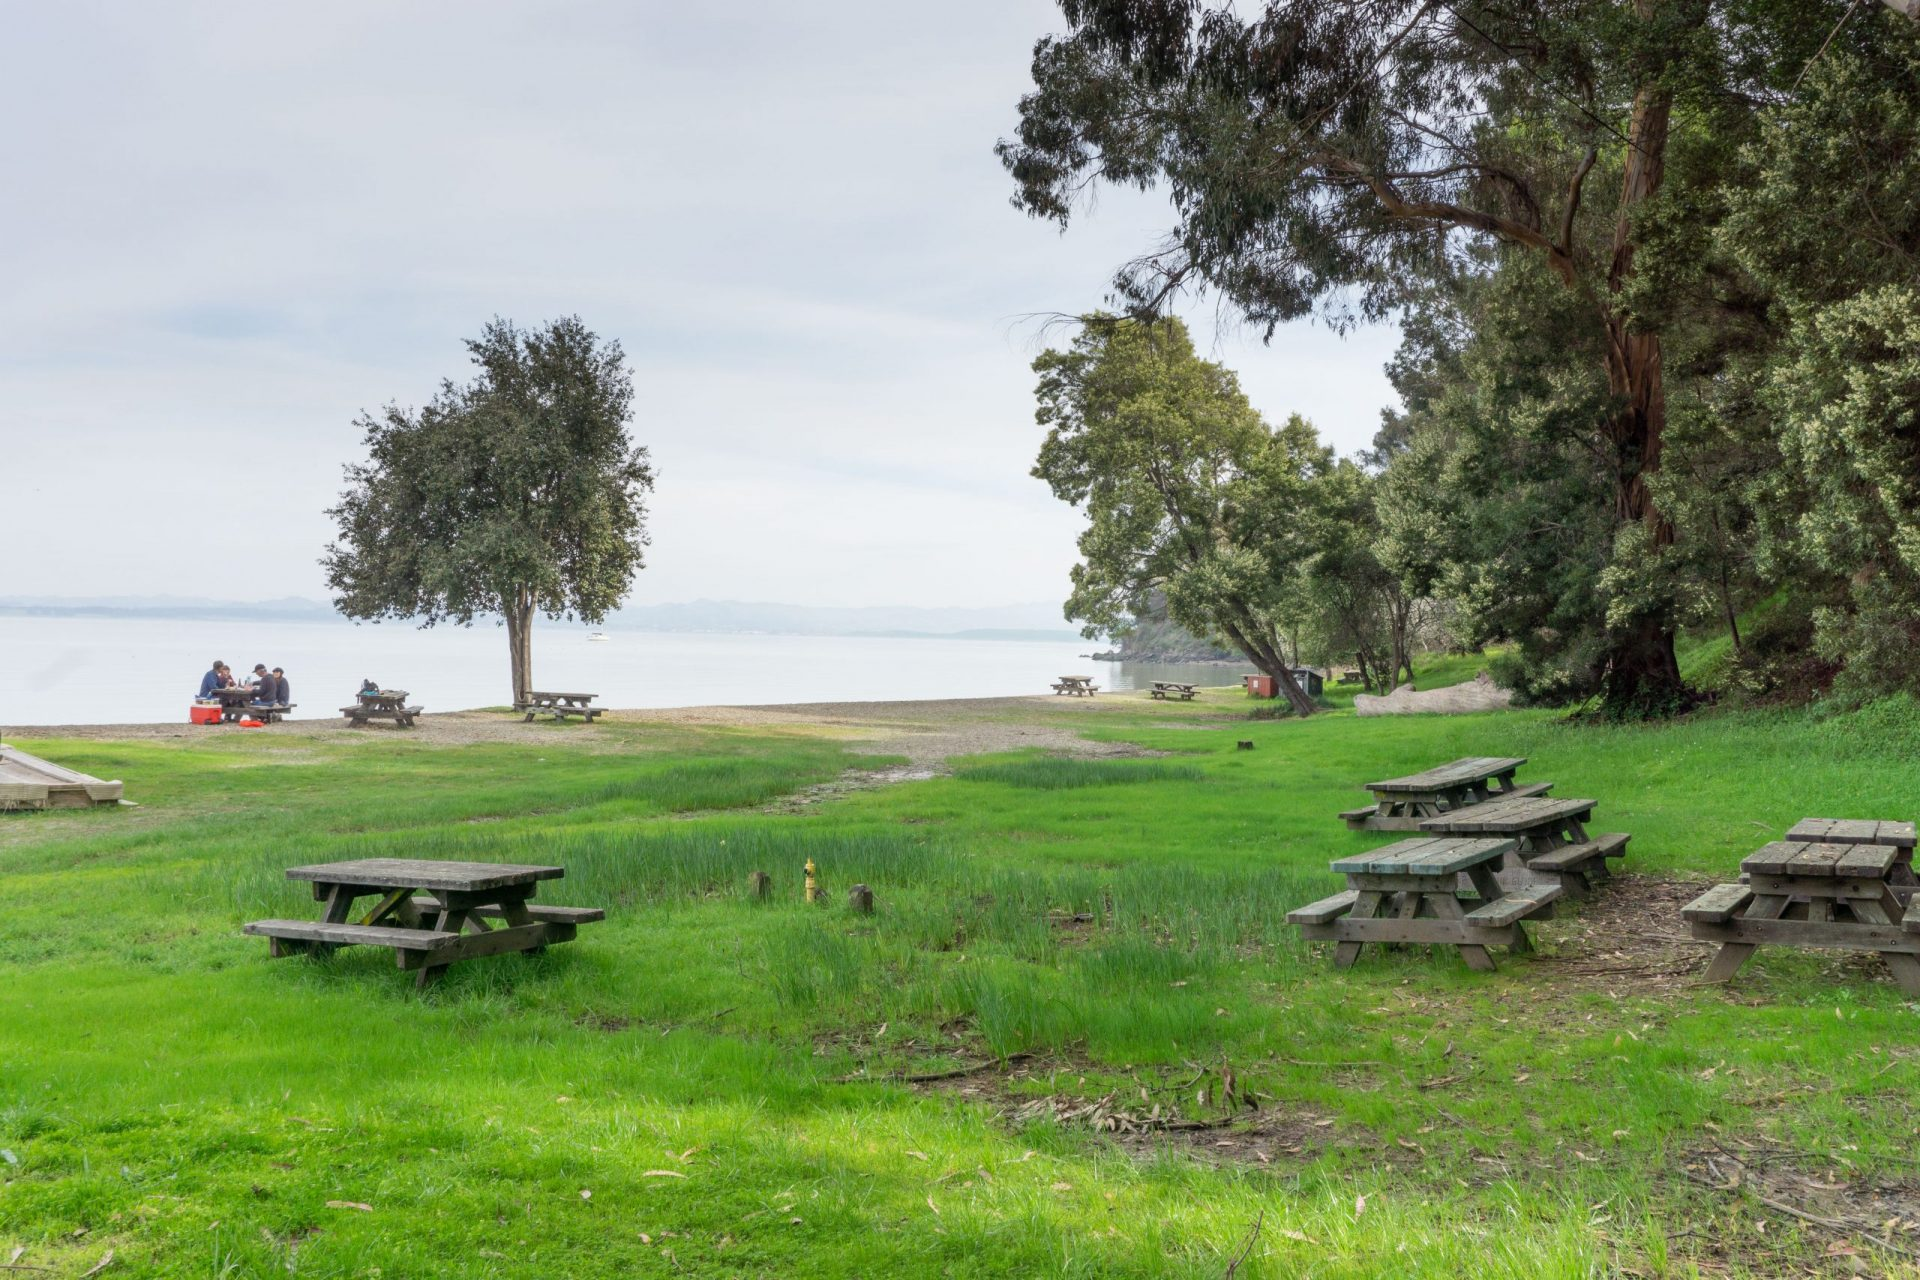 green lawn with picnic benches